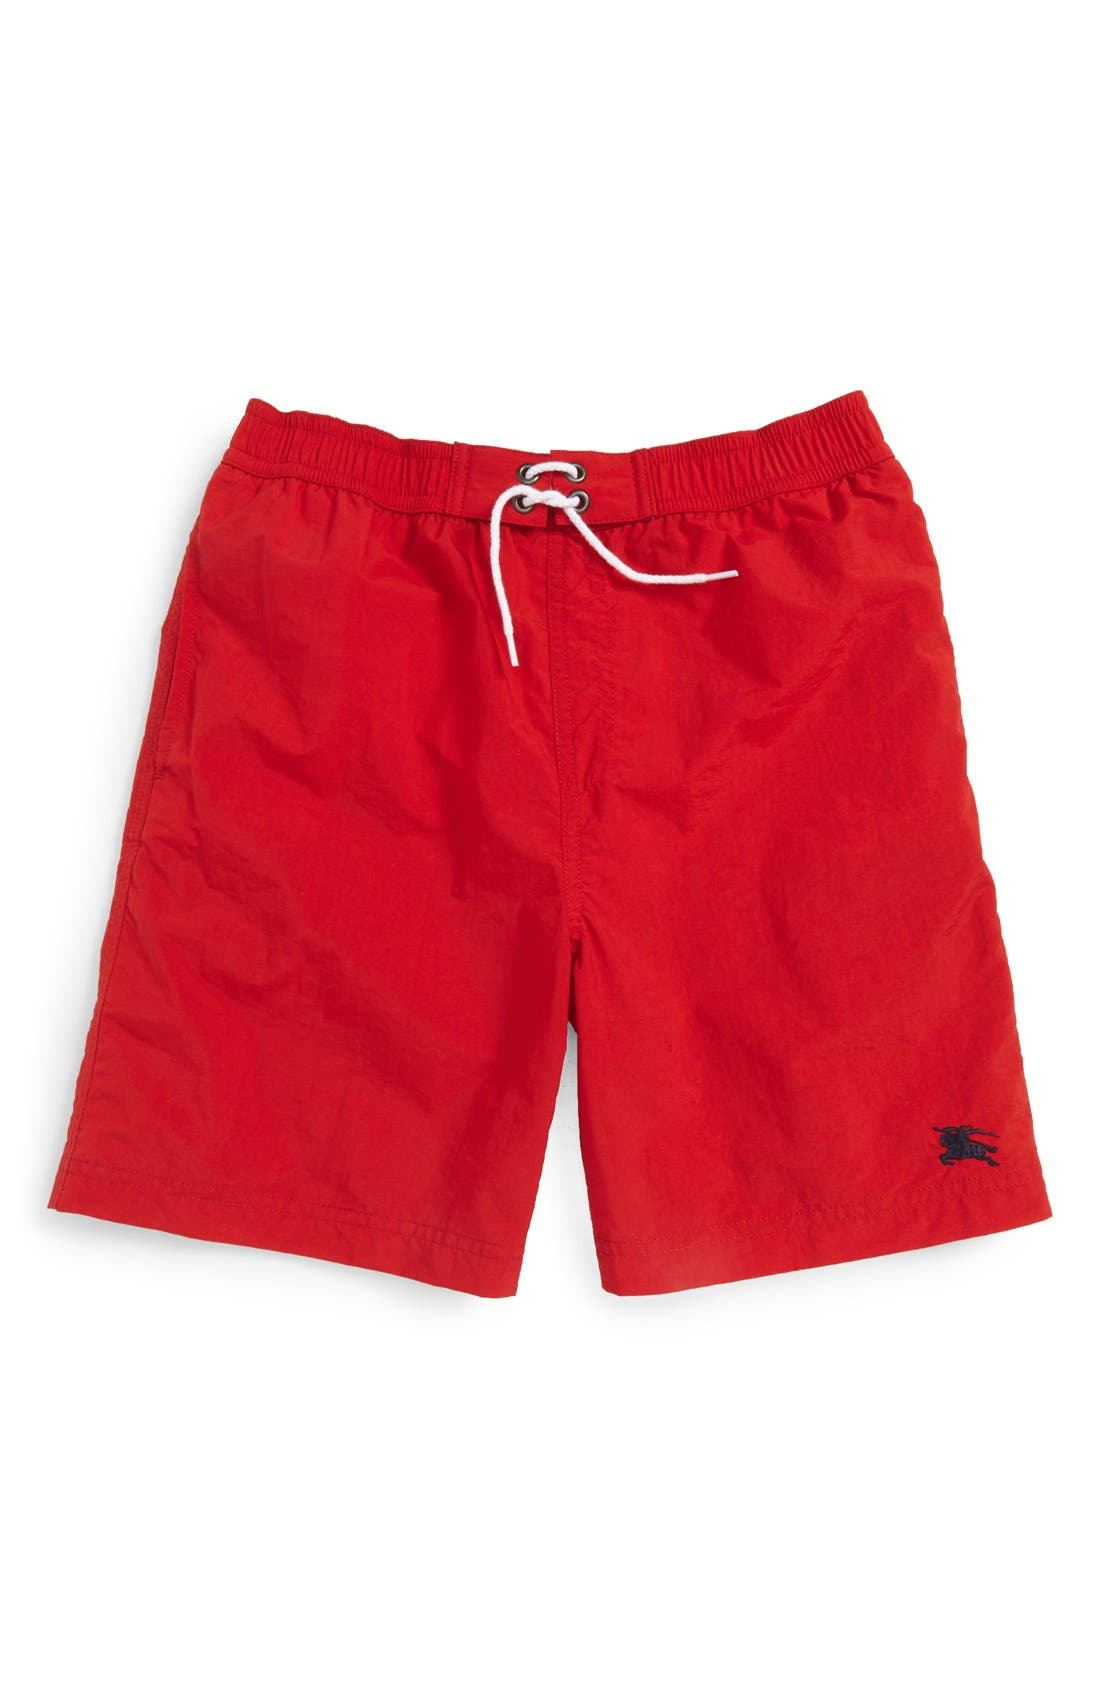 'Galvin' Swim Trunks,                         Main,                         color,